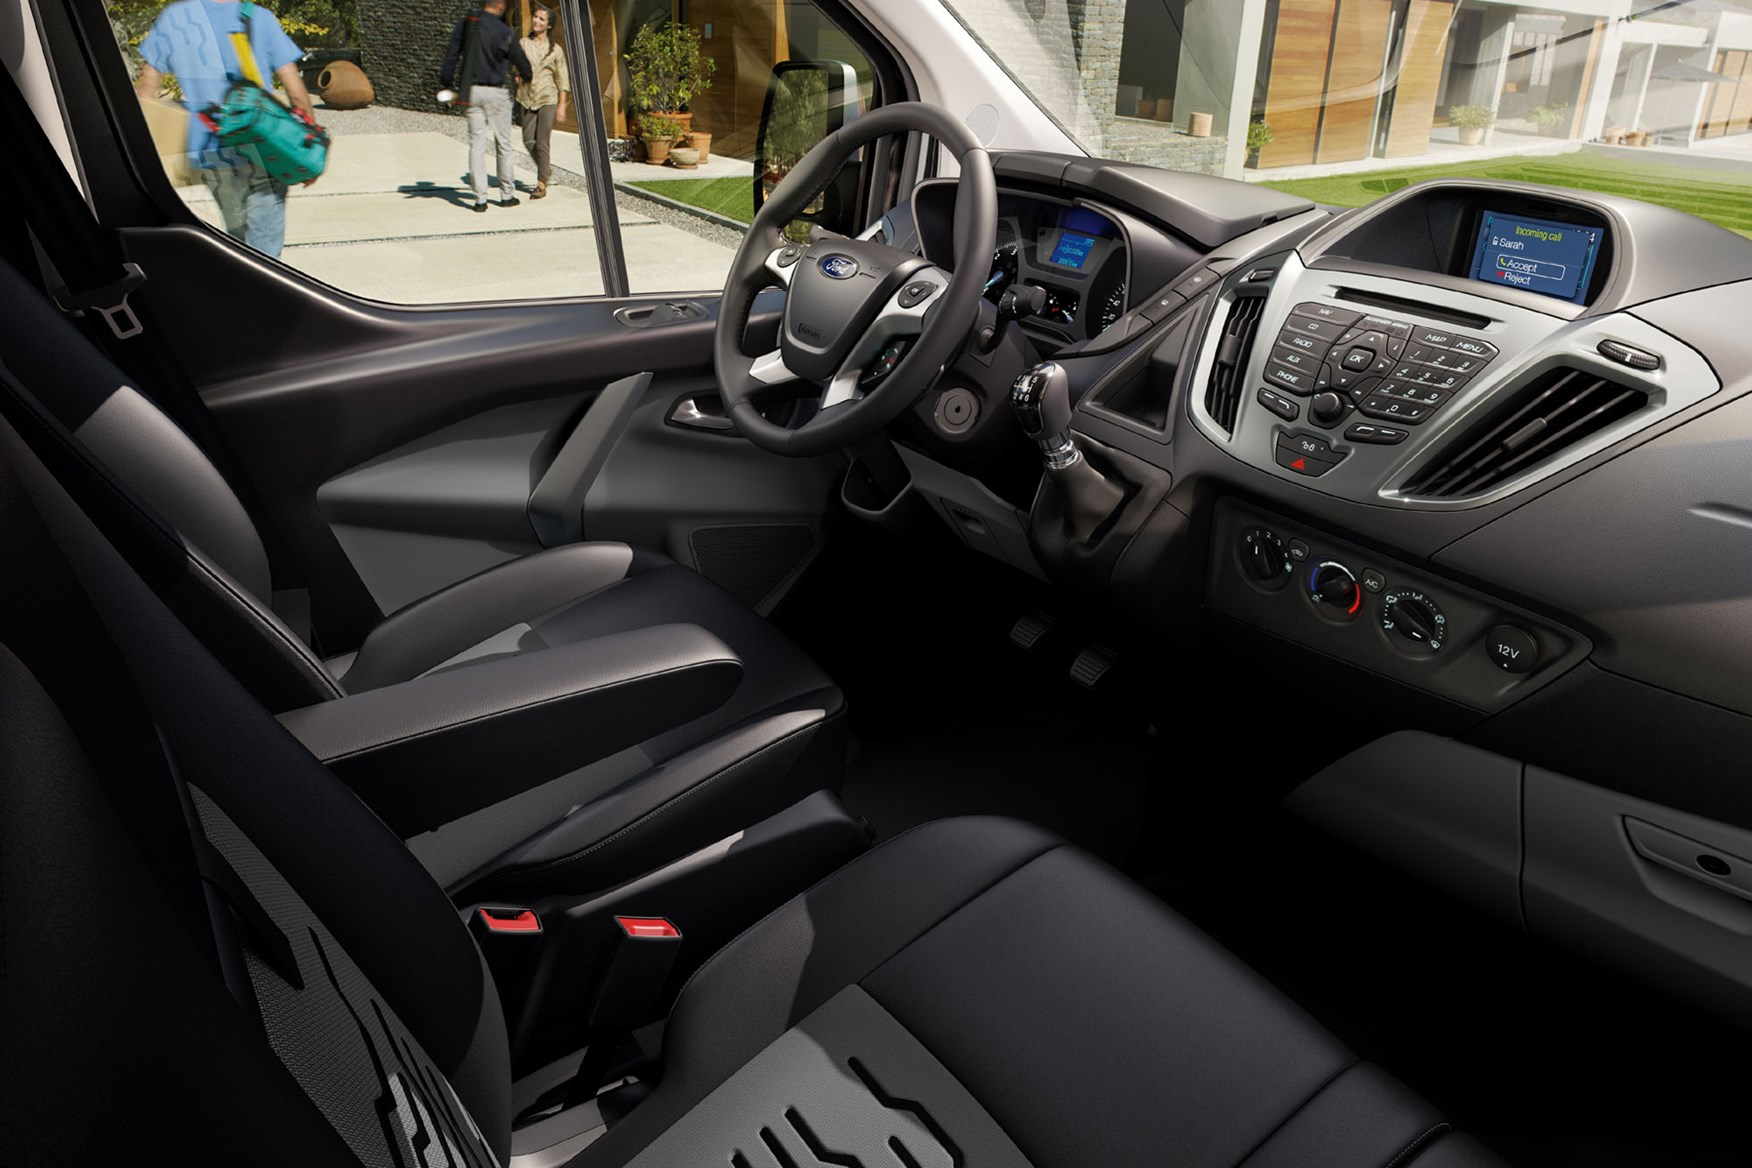 Ford Transit Custom review - 2012 pre-facelift cab interior